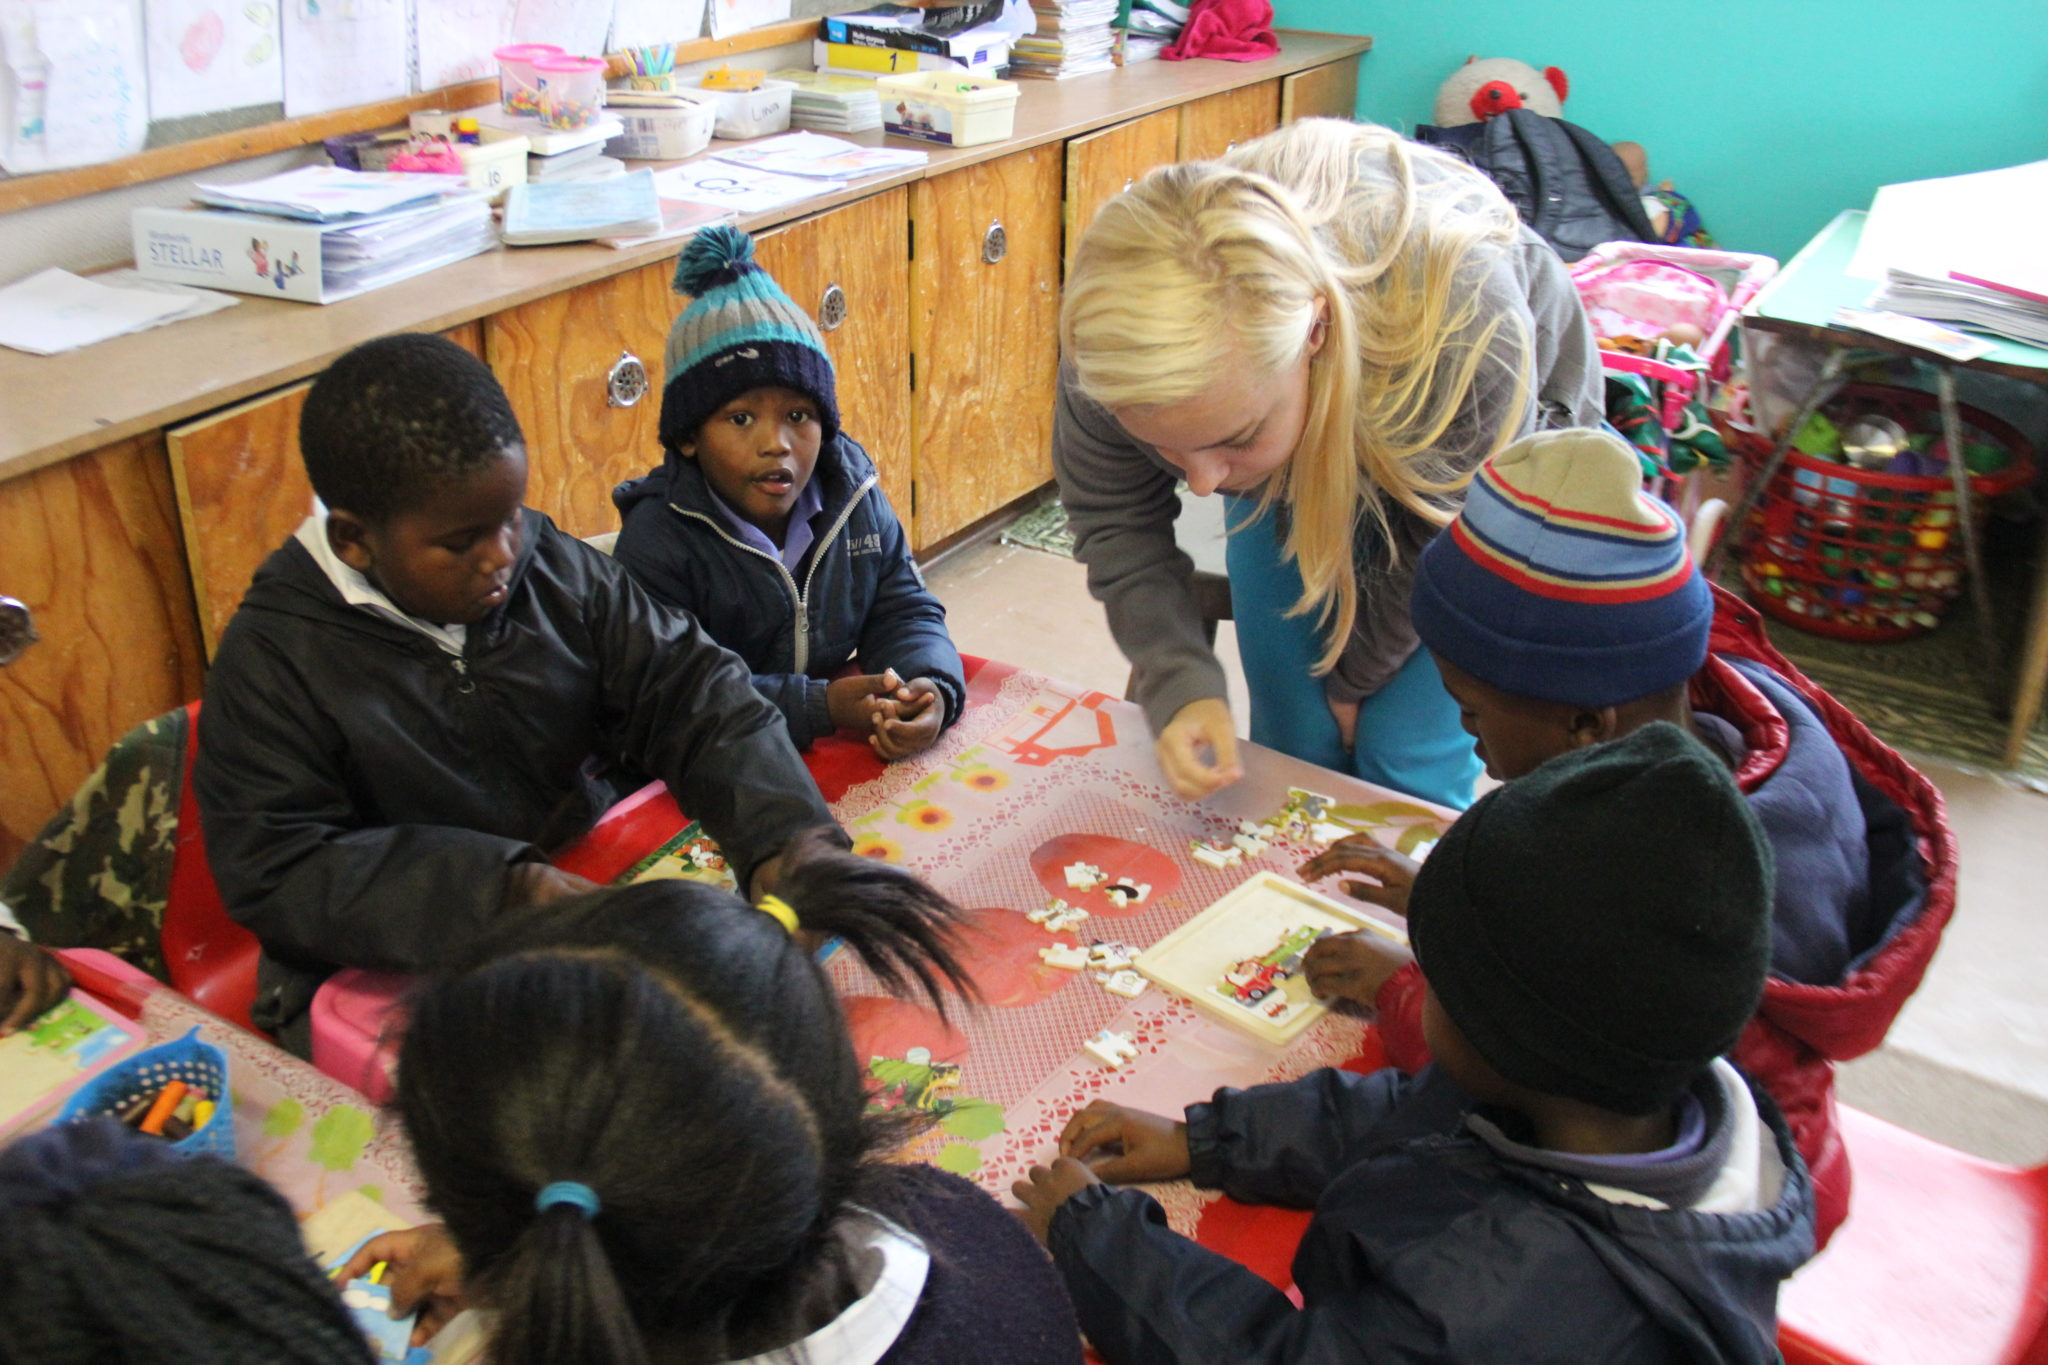 A Mercer student works with children in South Africa.